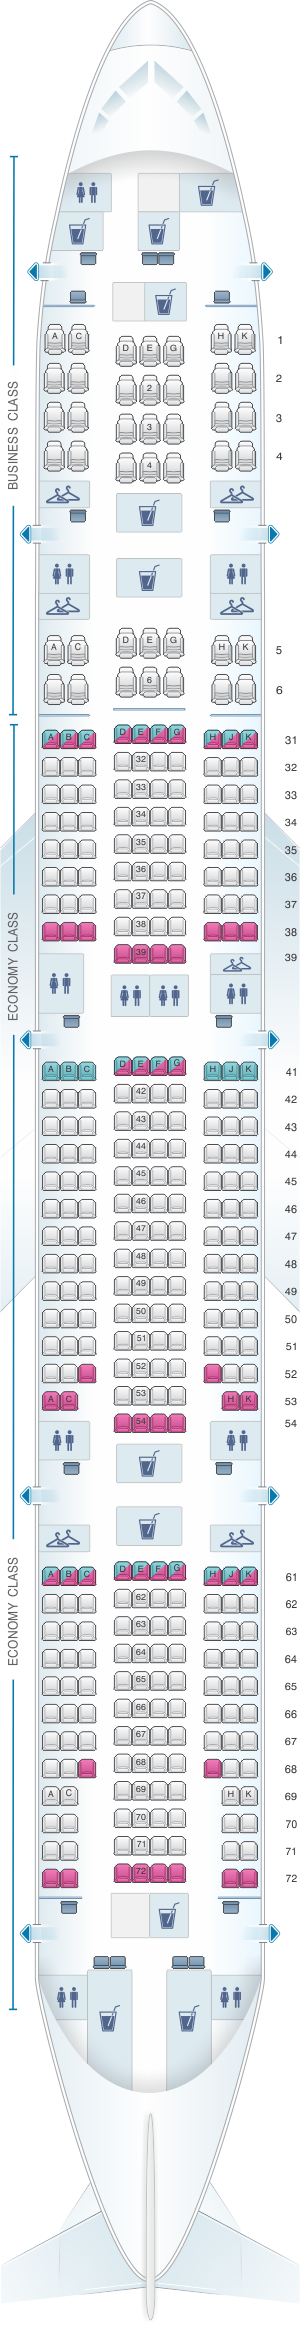 Seat map for Philippine Airlines Boeing B777 300ER